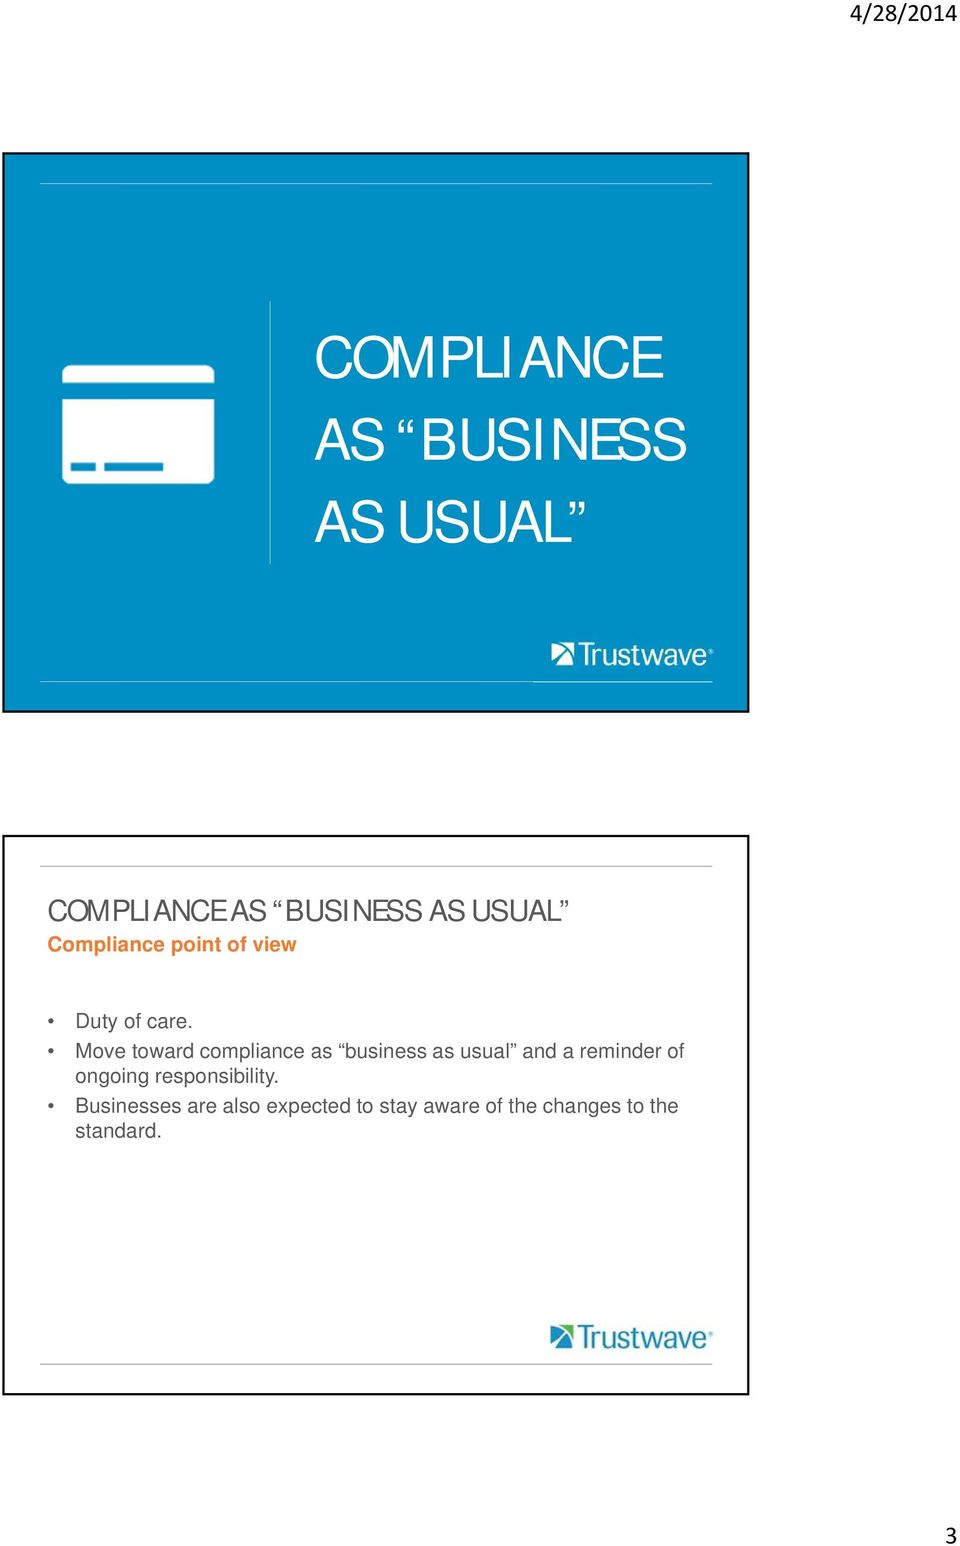 Move toward compliance as business as usual and a reminder